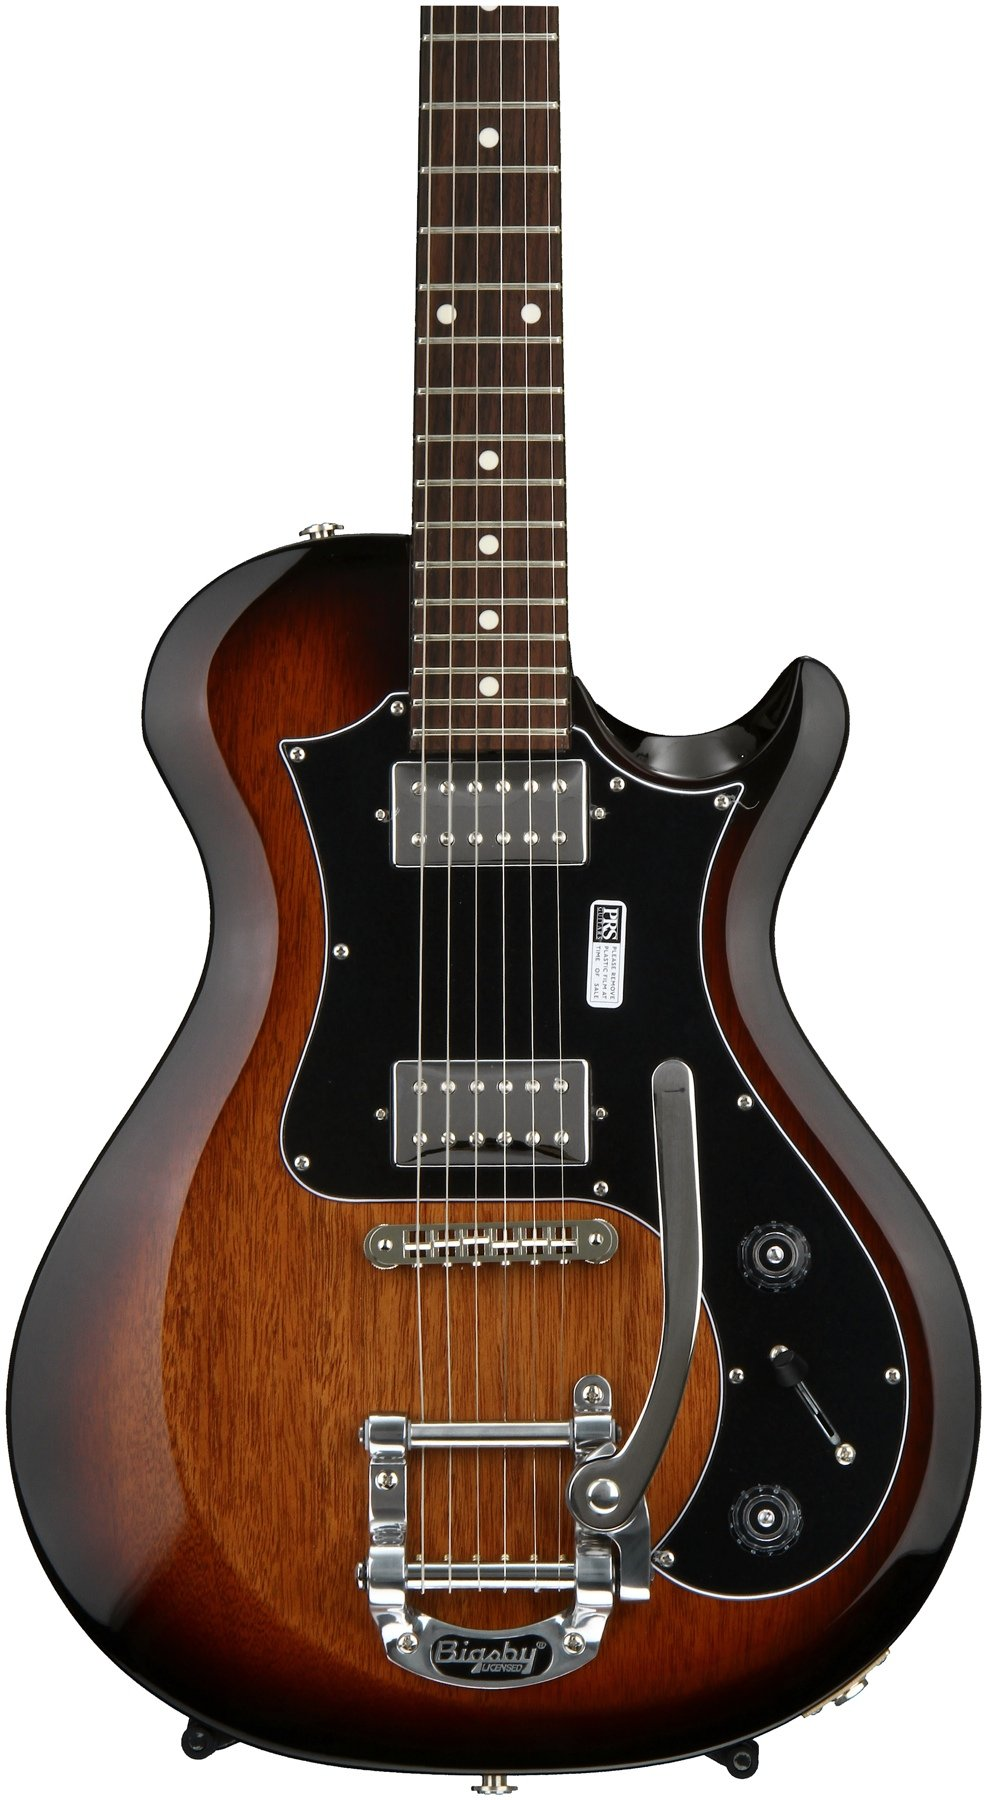 Prs S2 Starla Mccarty Tobacco Sunburst Sweetwater Humbuckers 3way Toggle Switch 2 Volumes Tones Coil Tap Reverse Image 1